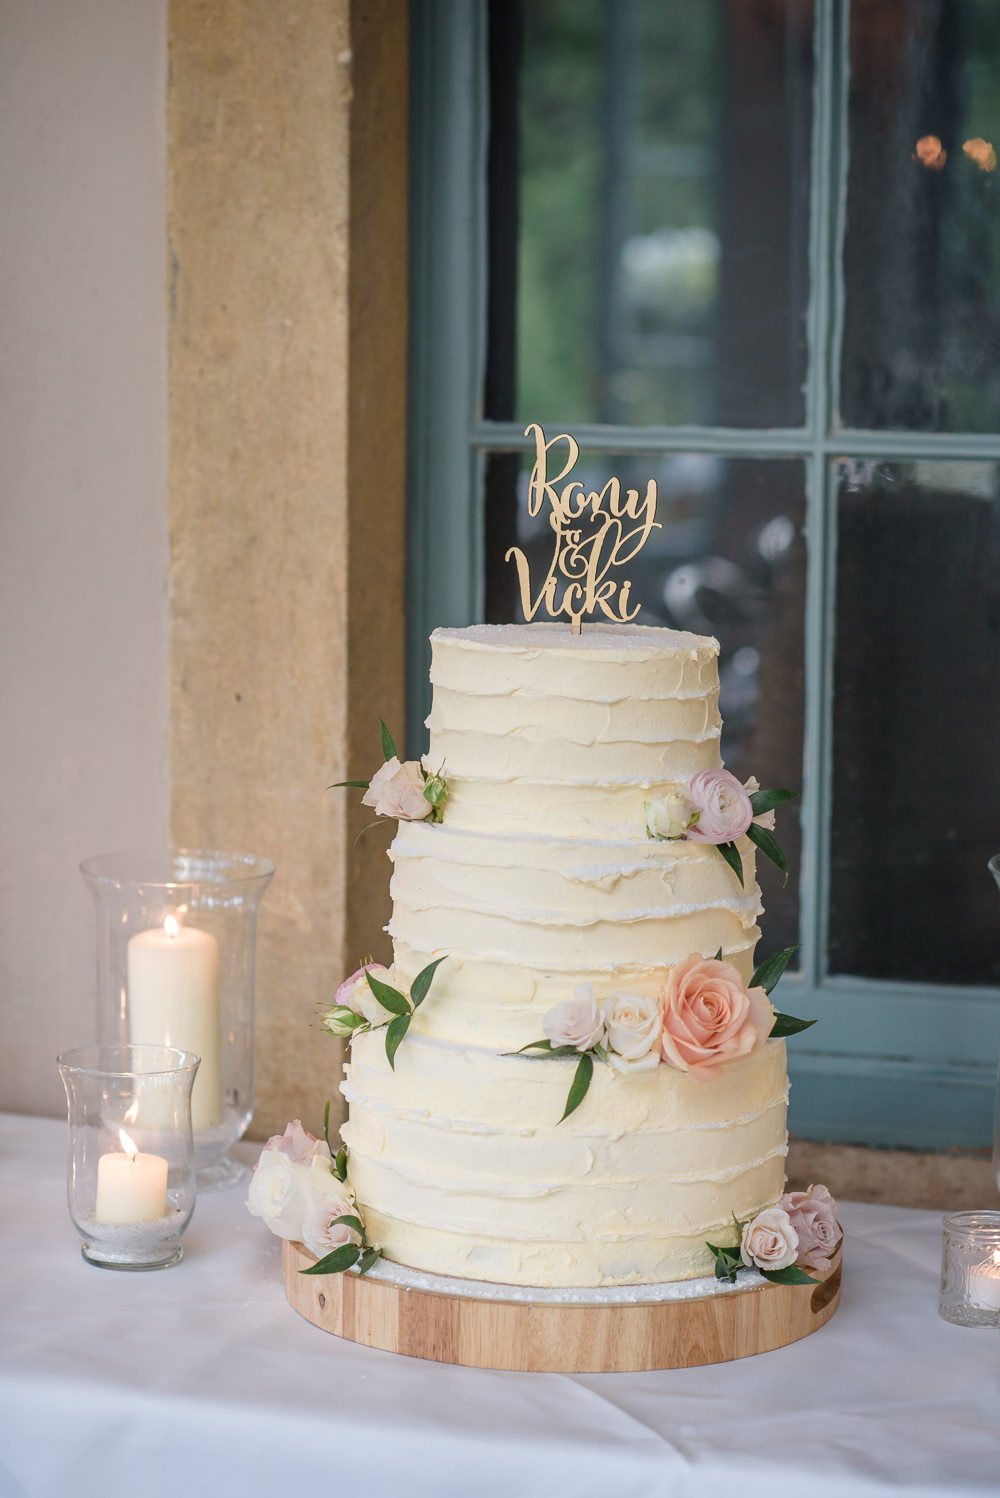 Buttercream Cake Flowers Floral Rose Laser Cut Topper Candle Vase Babington House Wedding Ria Mishaal Photography